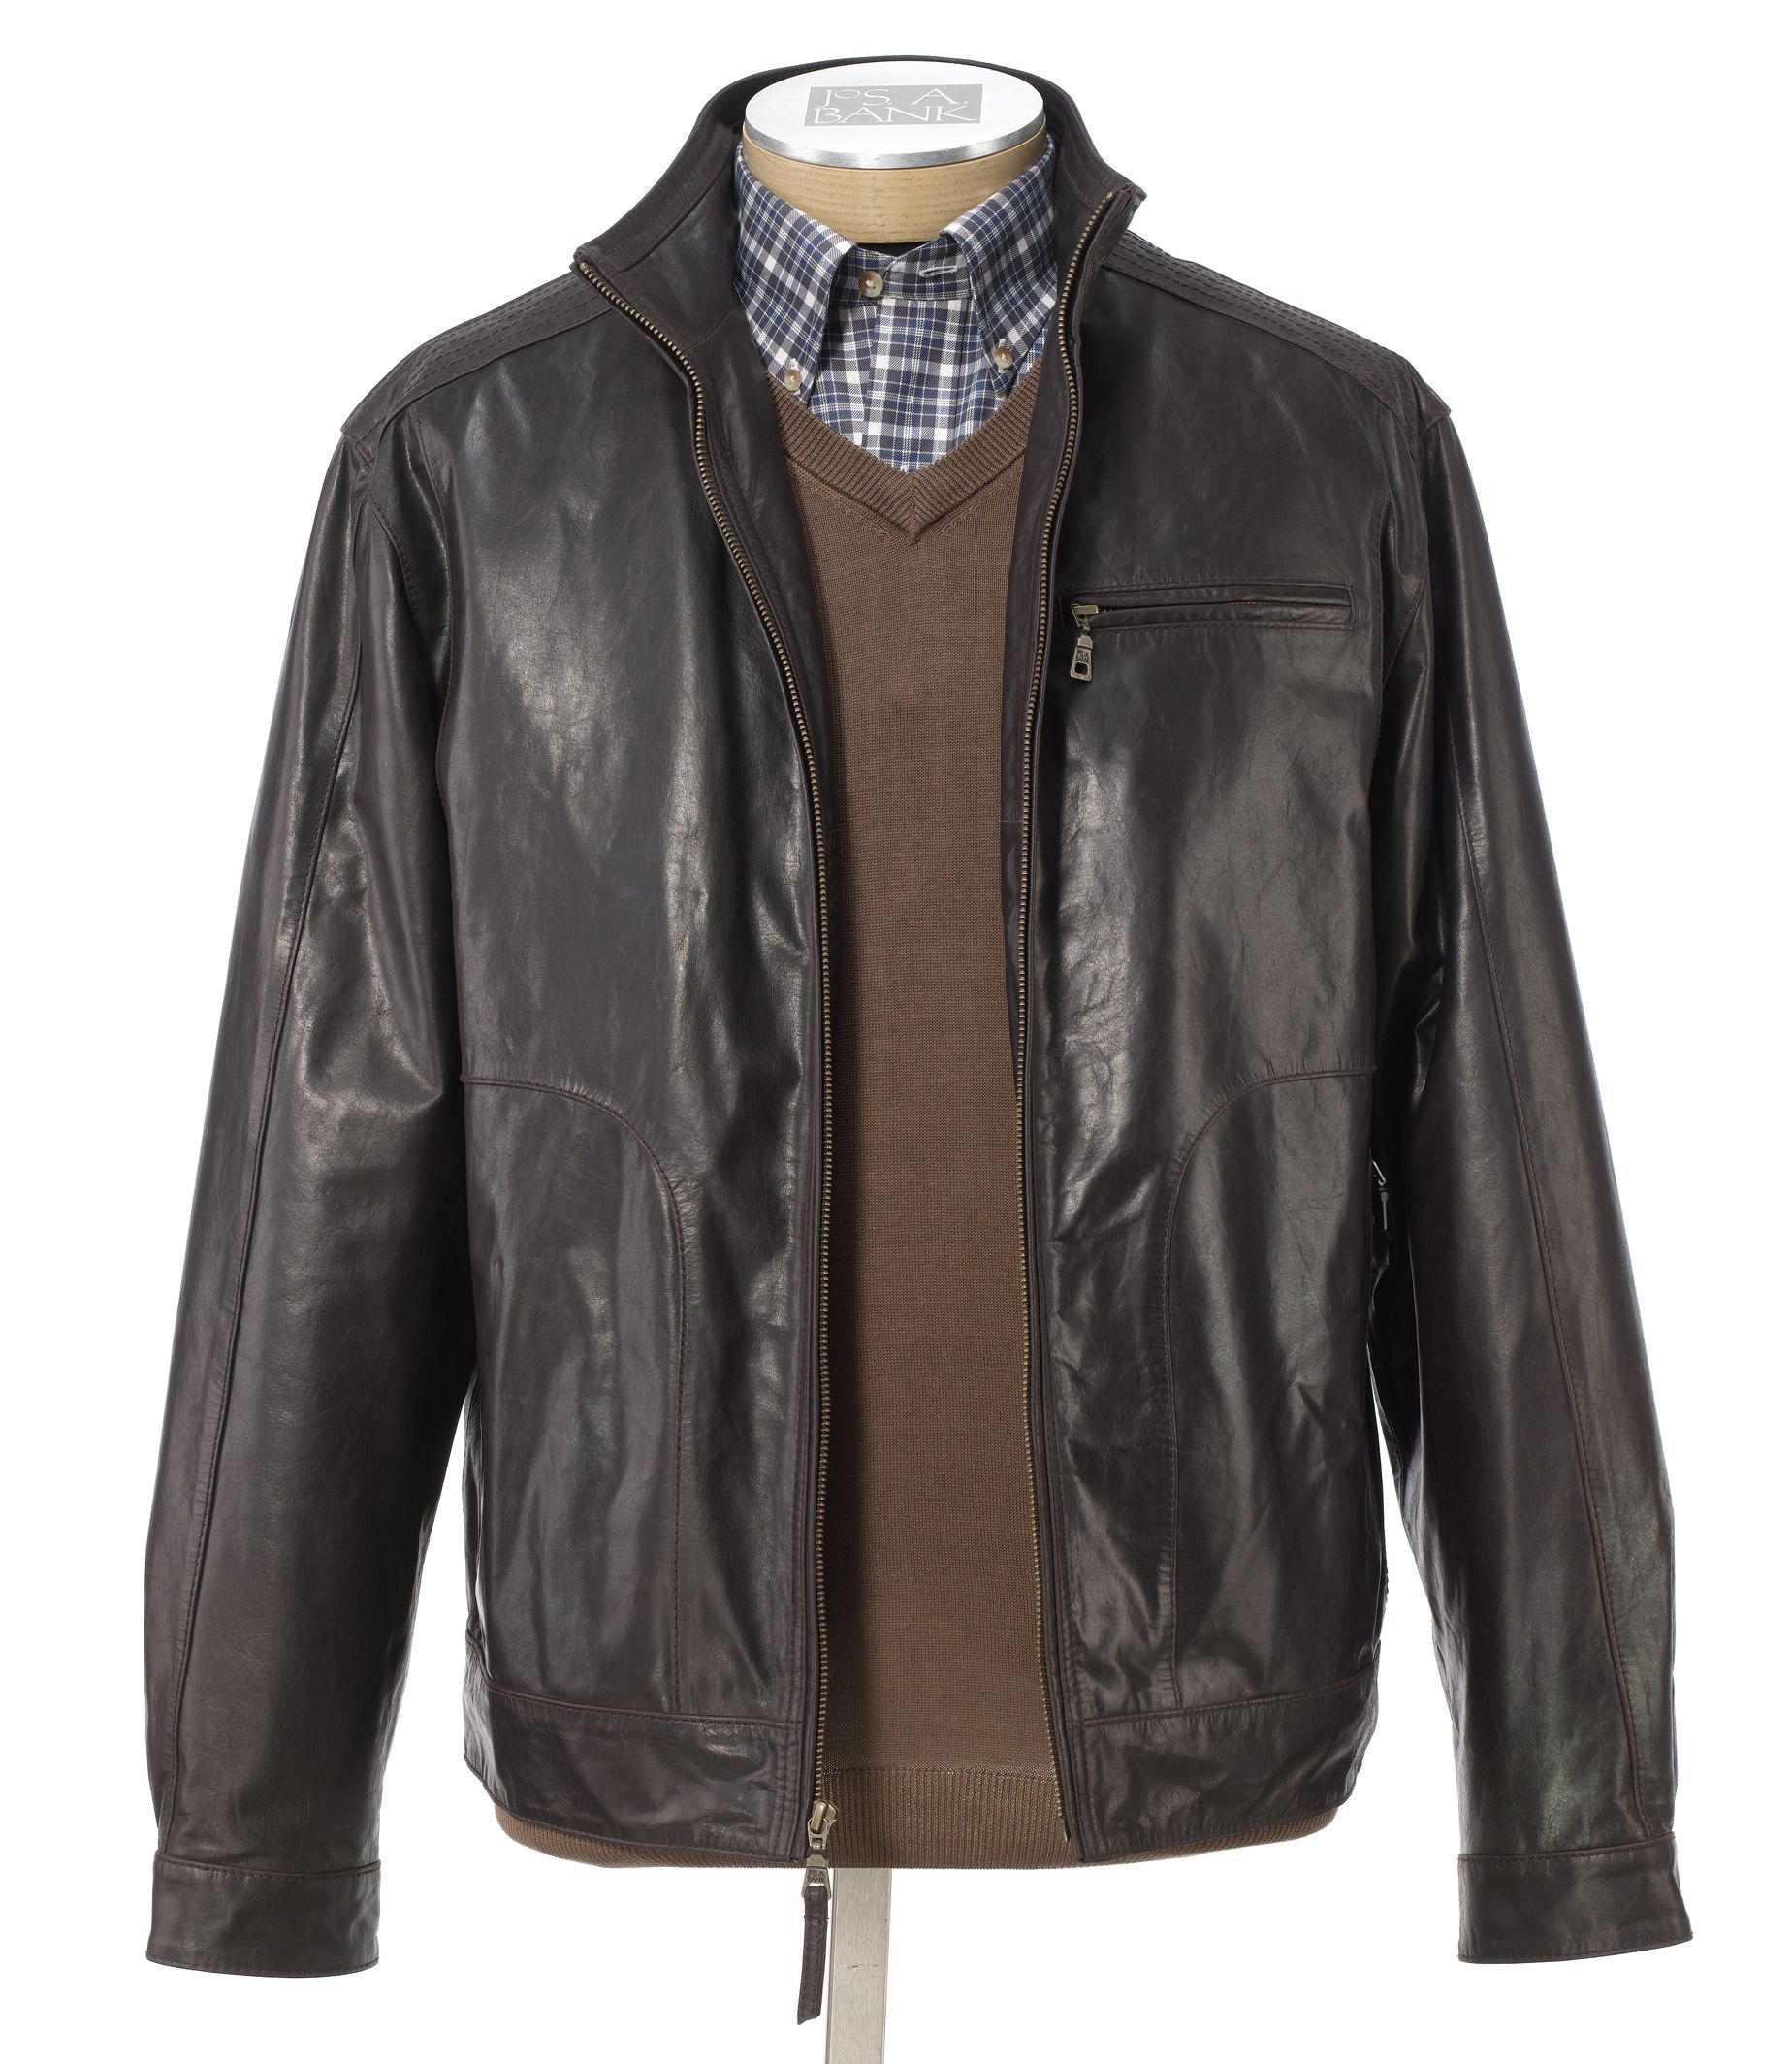 VIP Roadster Leather Jacket Big and Tall Sizes Leather